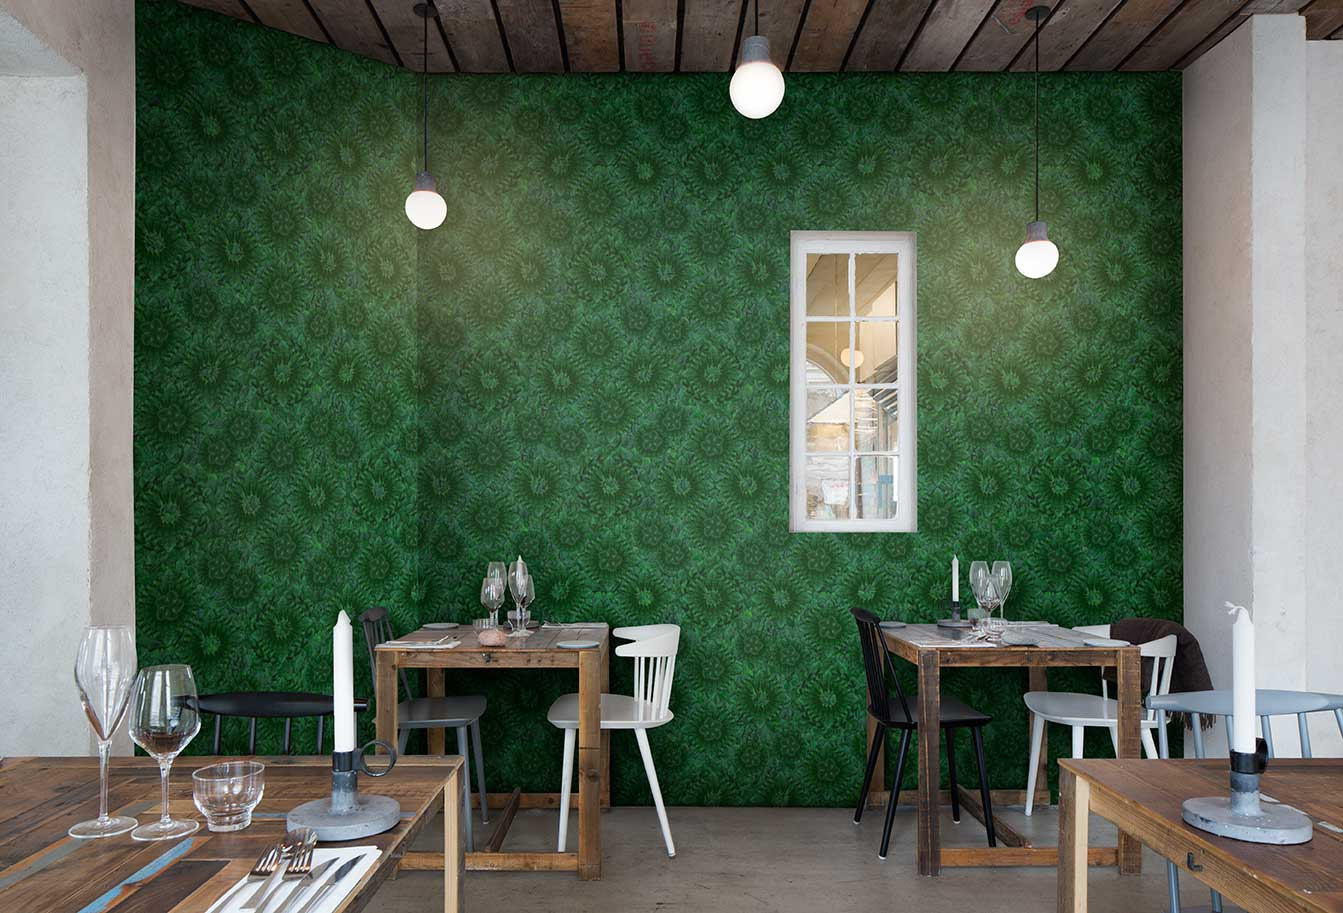 Go green by mr perswall wallpaper direct for Mural go green